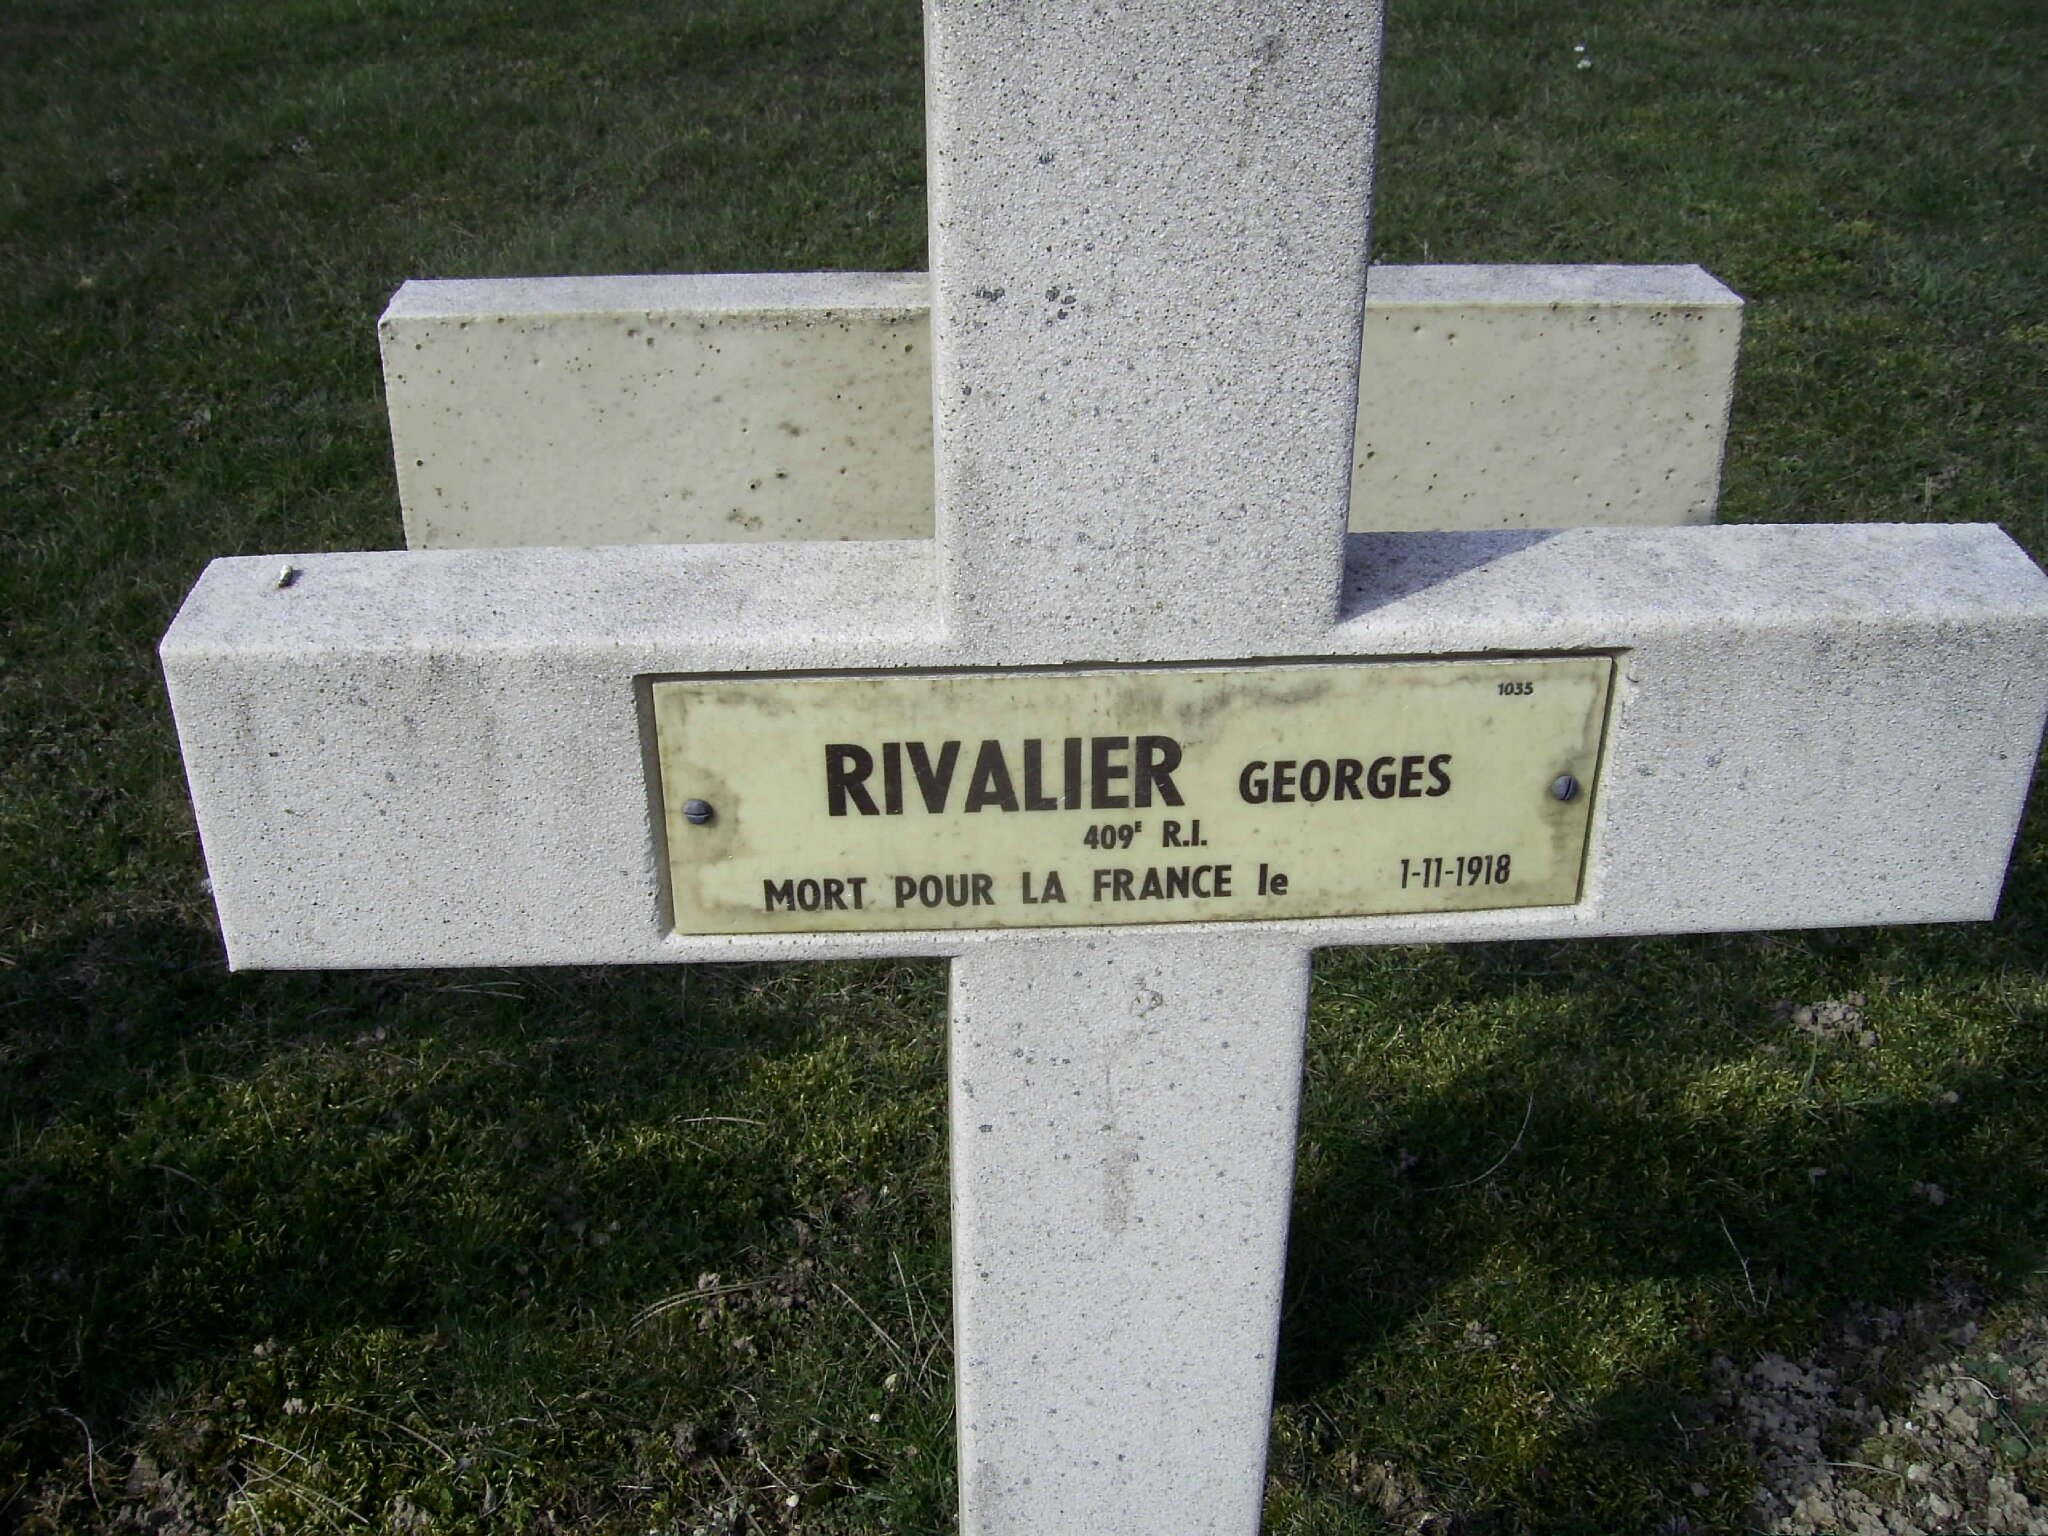 RIVALIER Georges